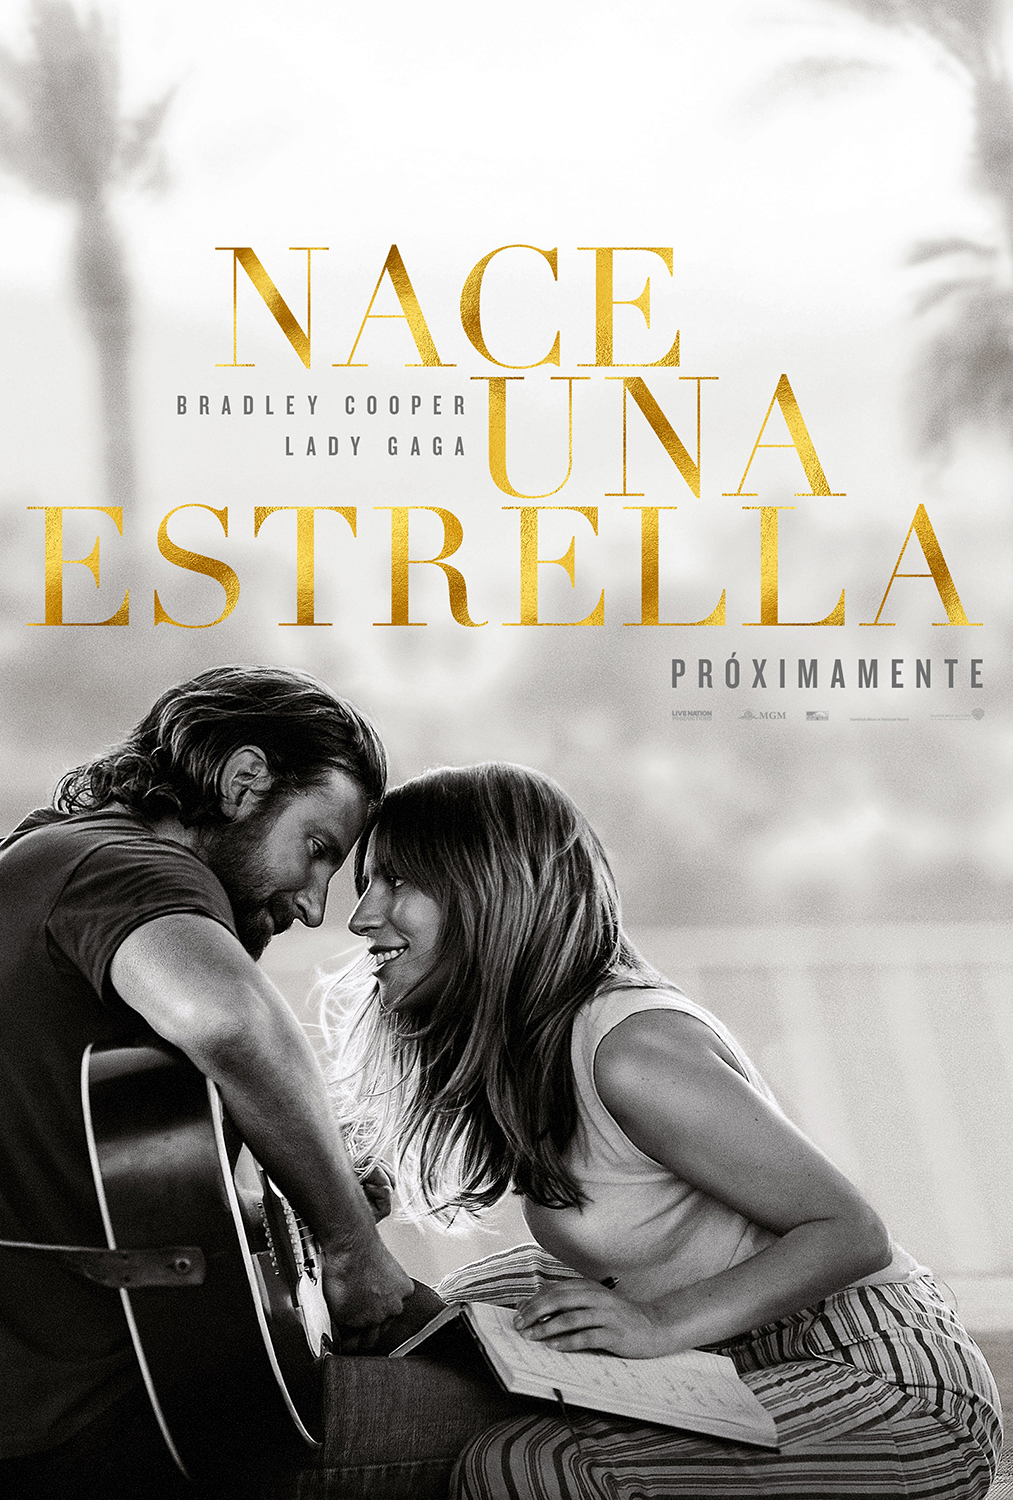 Photo of 'Nace una estrella' en Cinemark Panamá